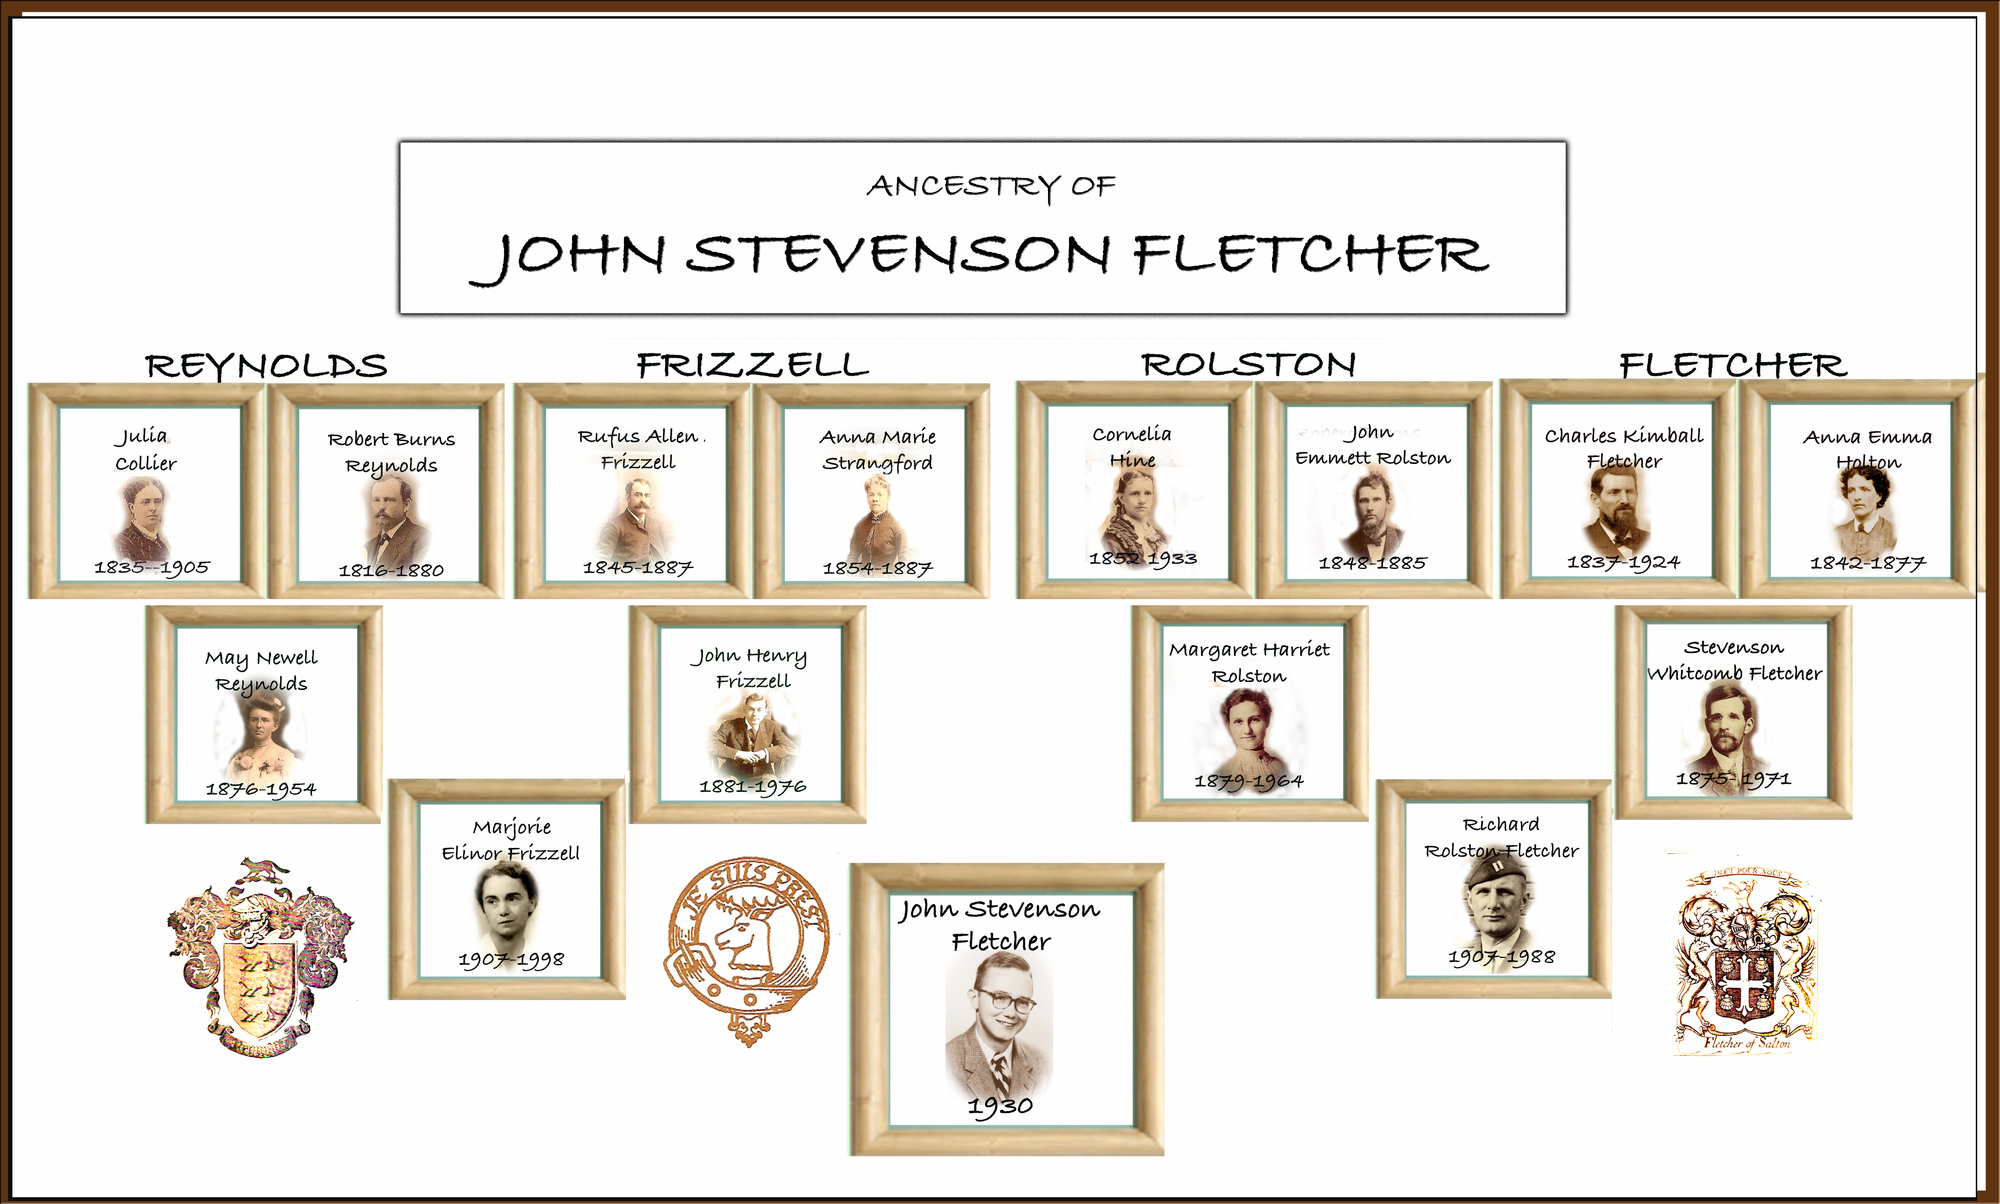 Fletcher_JSFletcher_genealogy.jpg